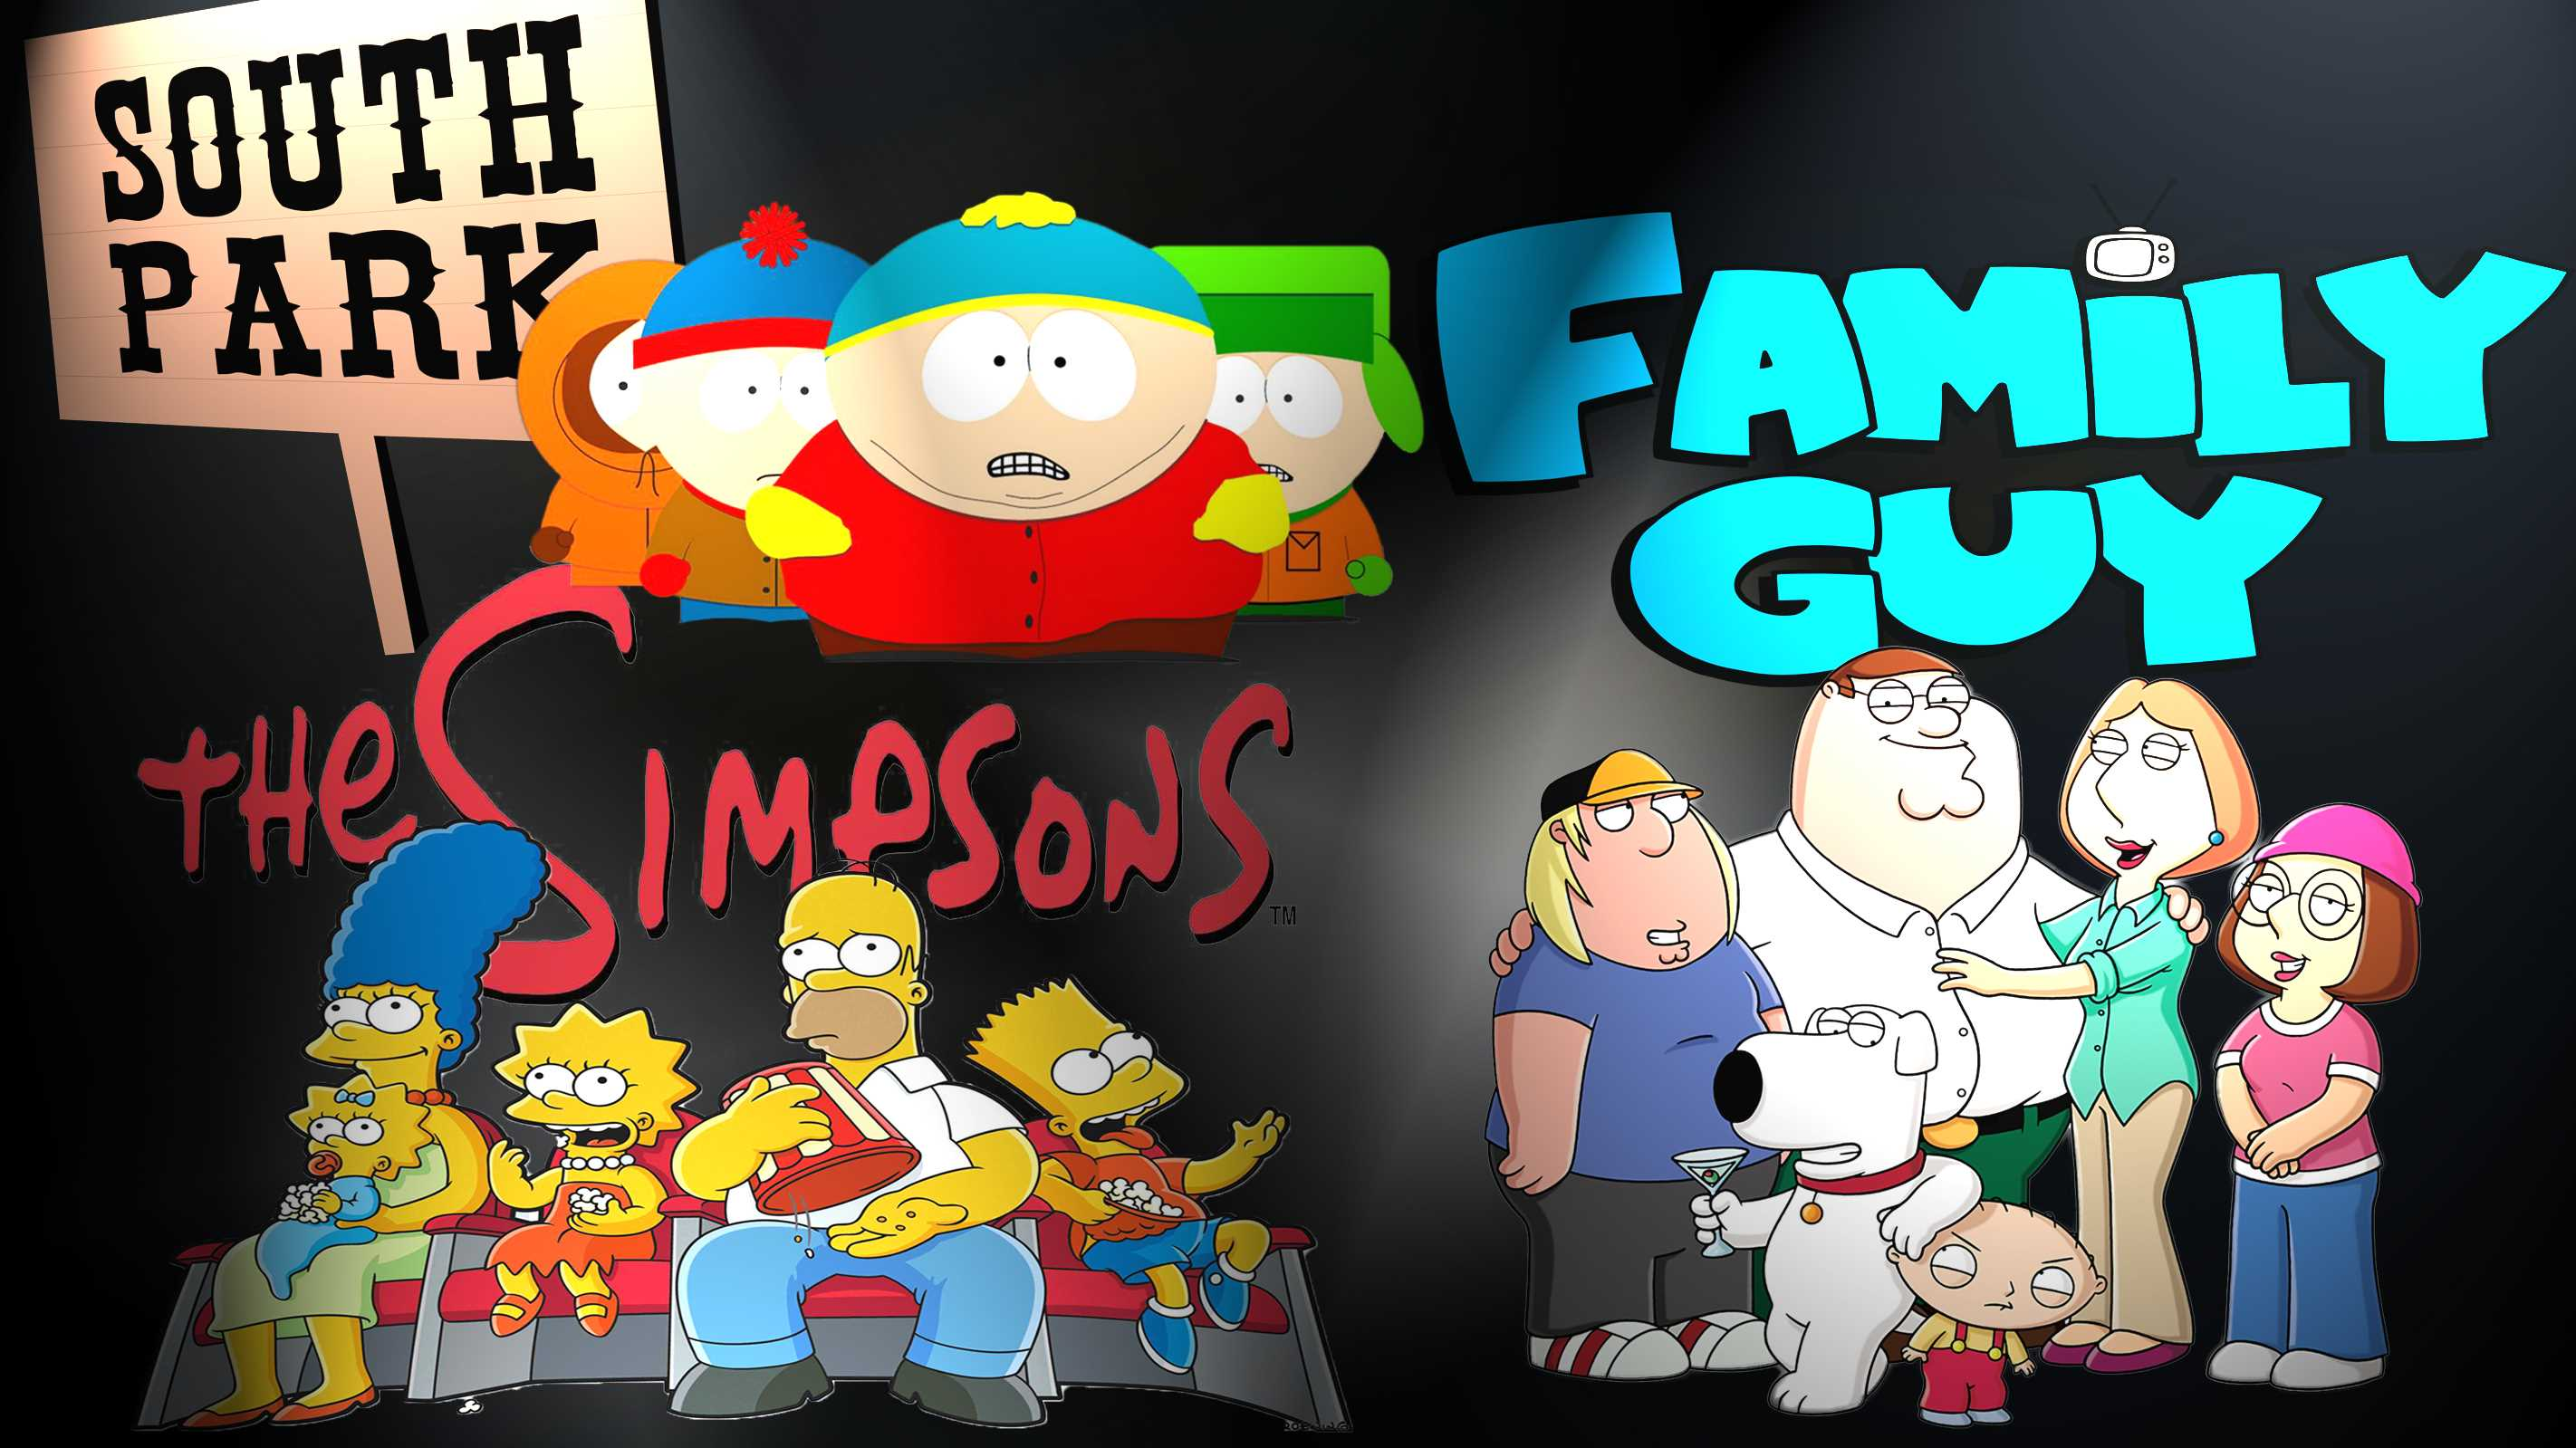 Image currently unavailable. Go to www.generator.fewhack.com and choose Family Guy The Quest for Stuff image, you will be redirect to Family Guy The Quest for Stuff Generator site.